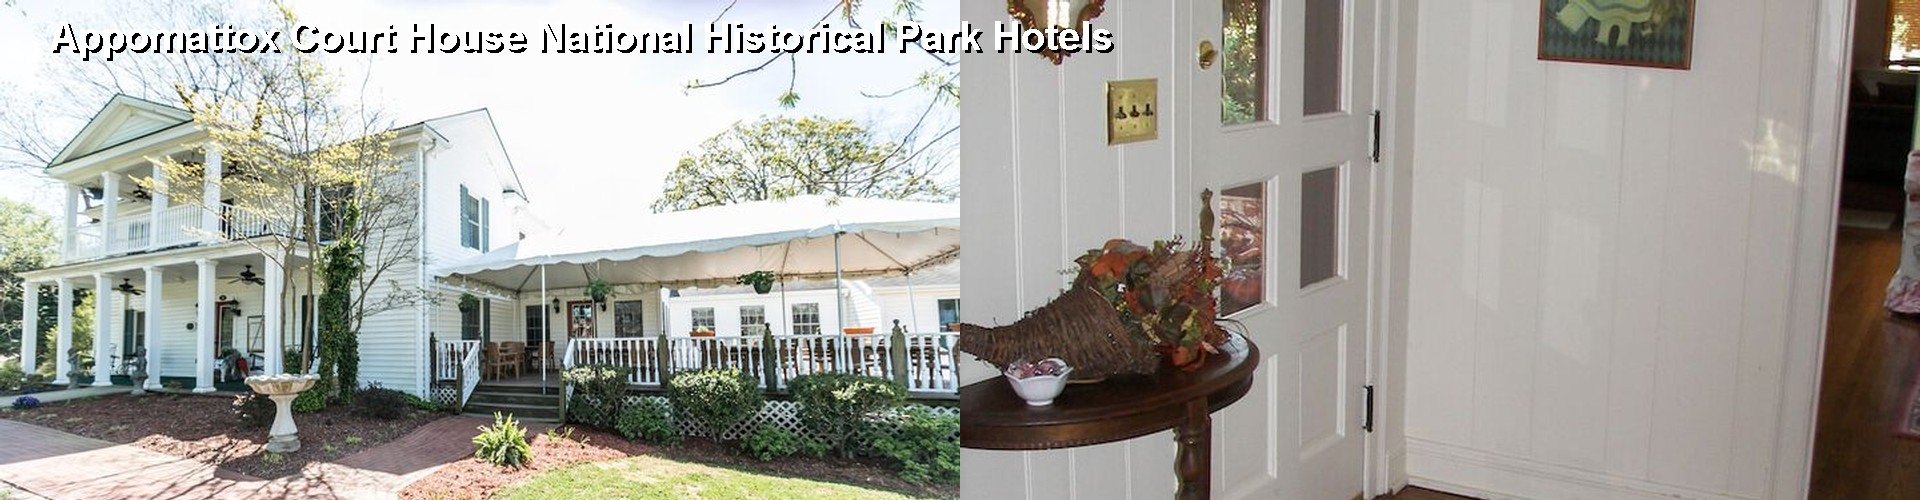 5 Best Hotels near Appomattox Court House National Historical Park